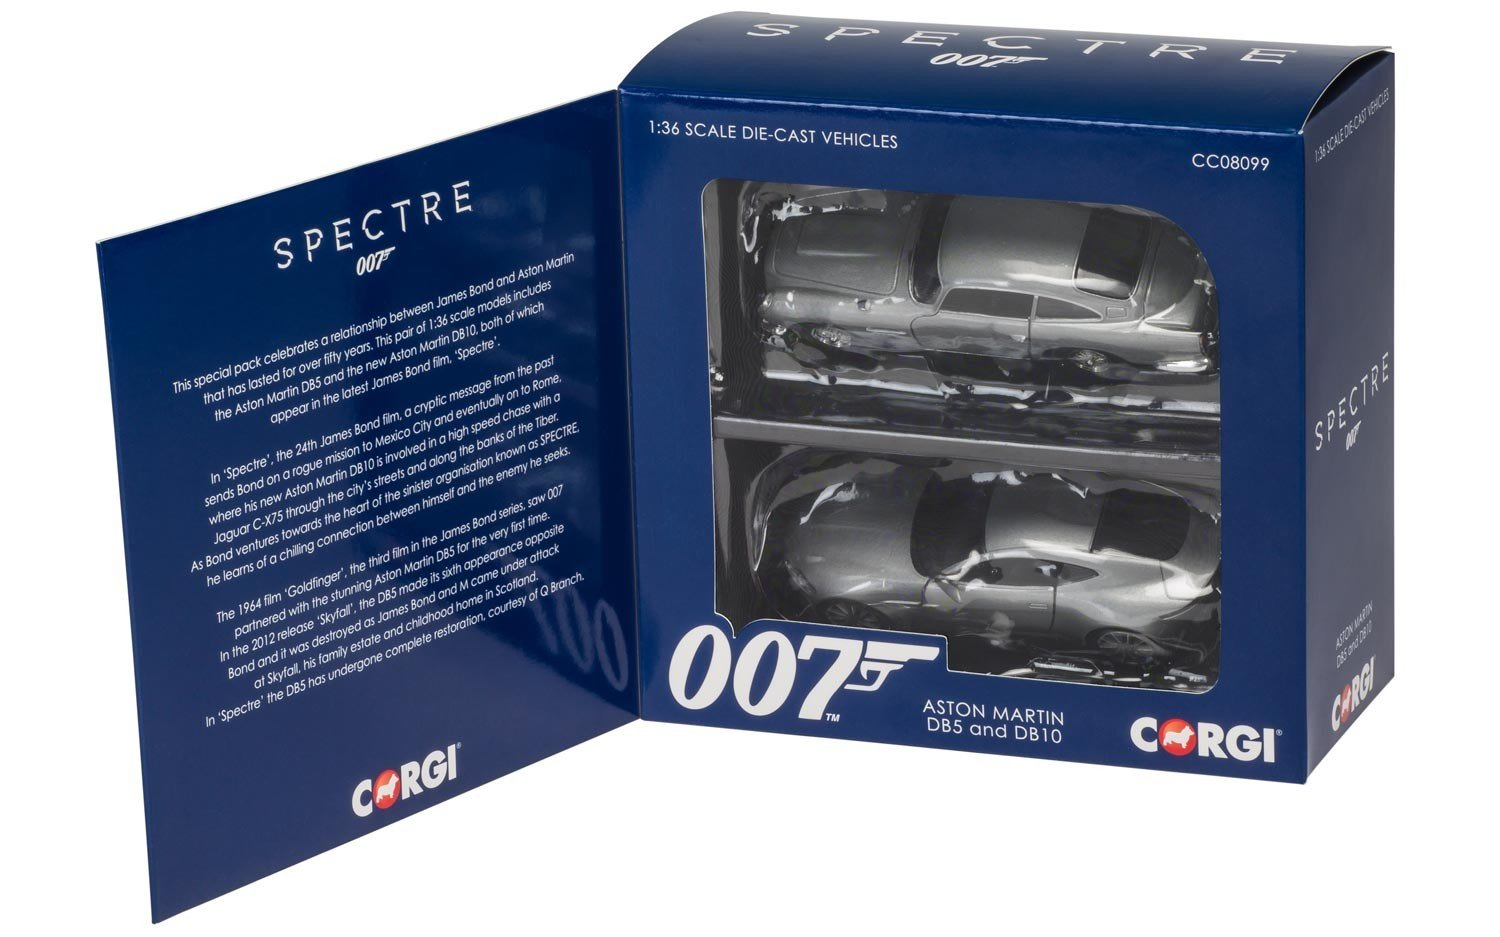 Corgi Boys James Bond Aston Martin DB10 and DB5 - 'Spectre' 1:36 Diecast Car Twin Pack